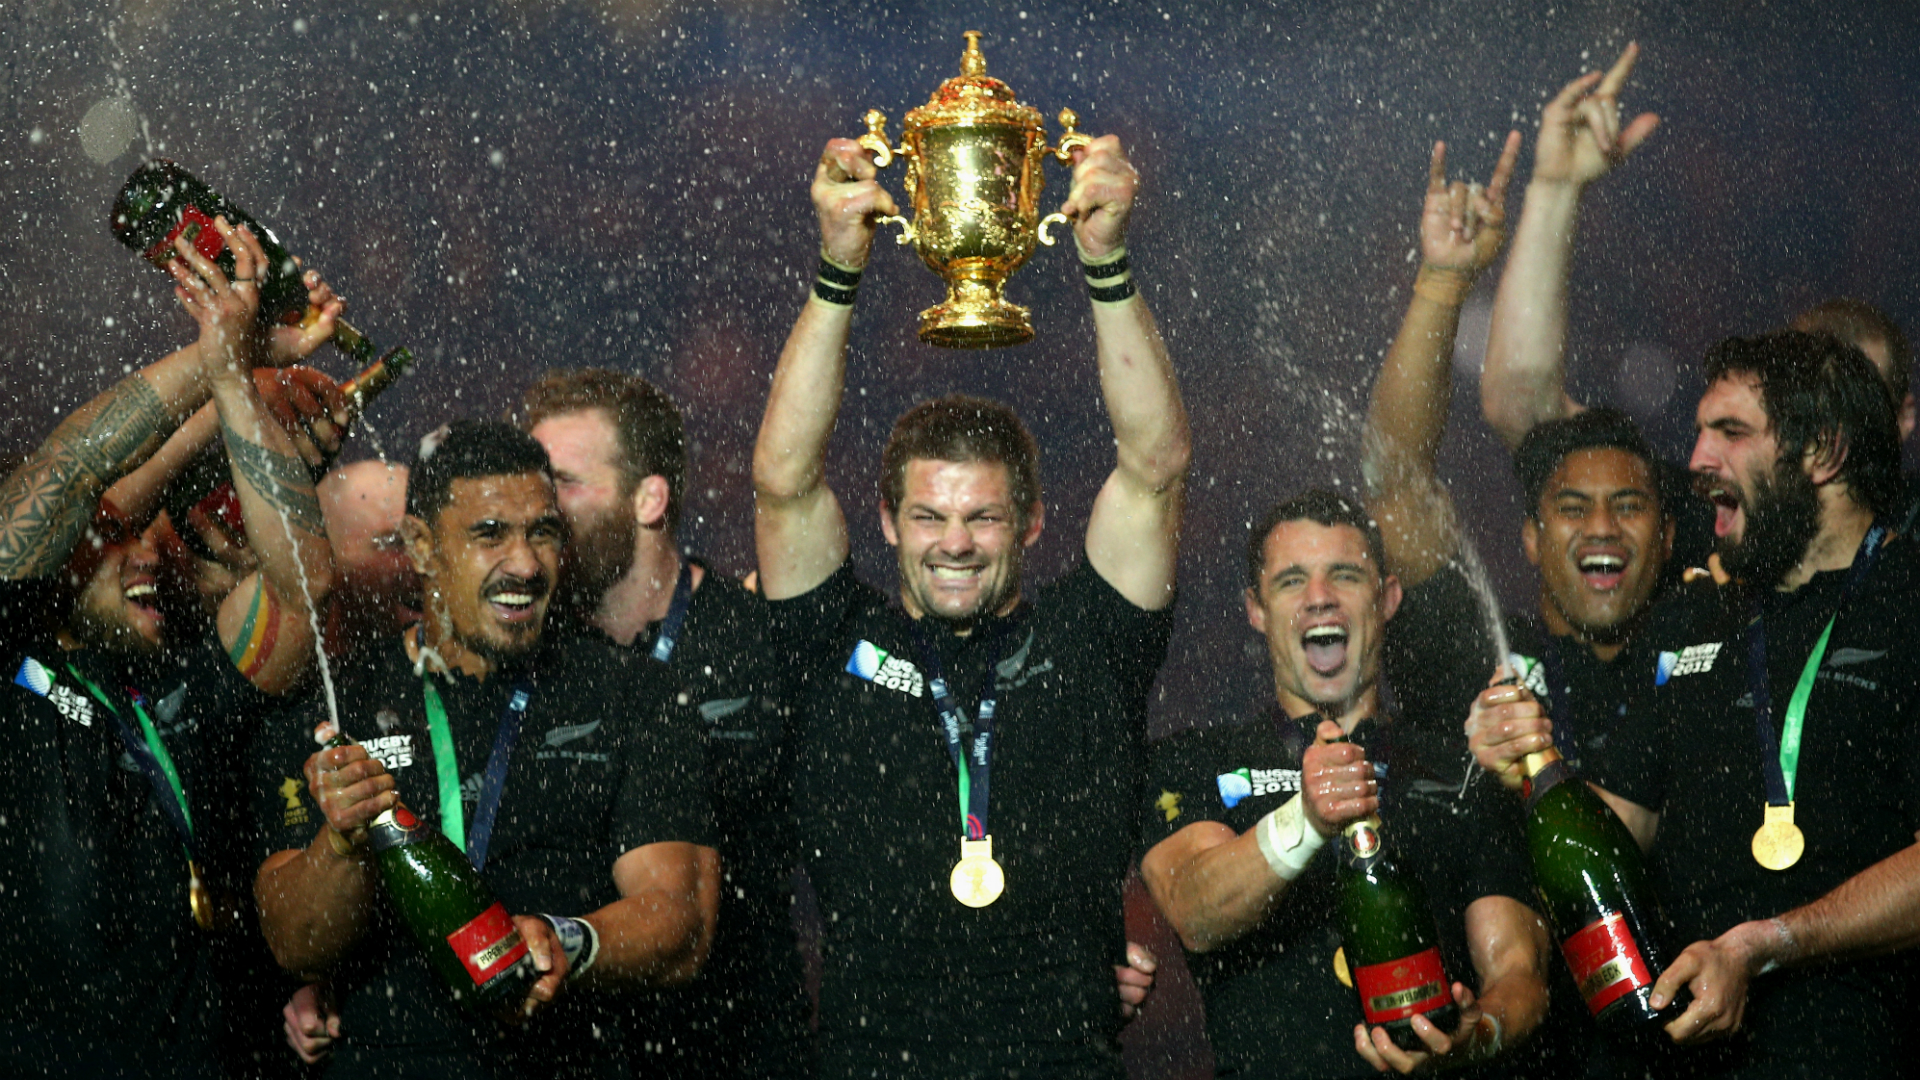 SuperSport's 2019 Rugby World Cup Offering